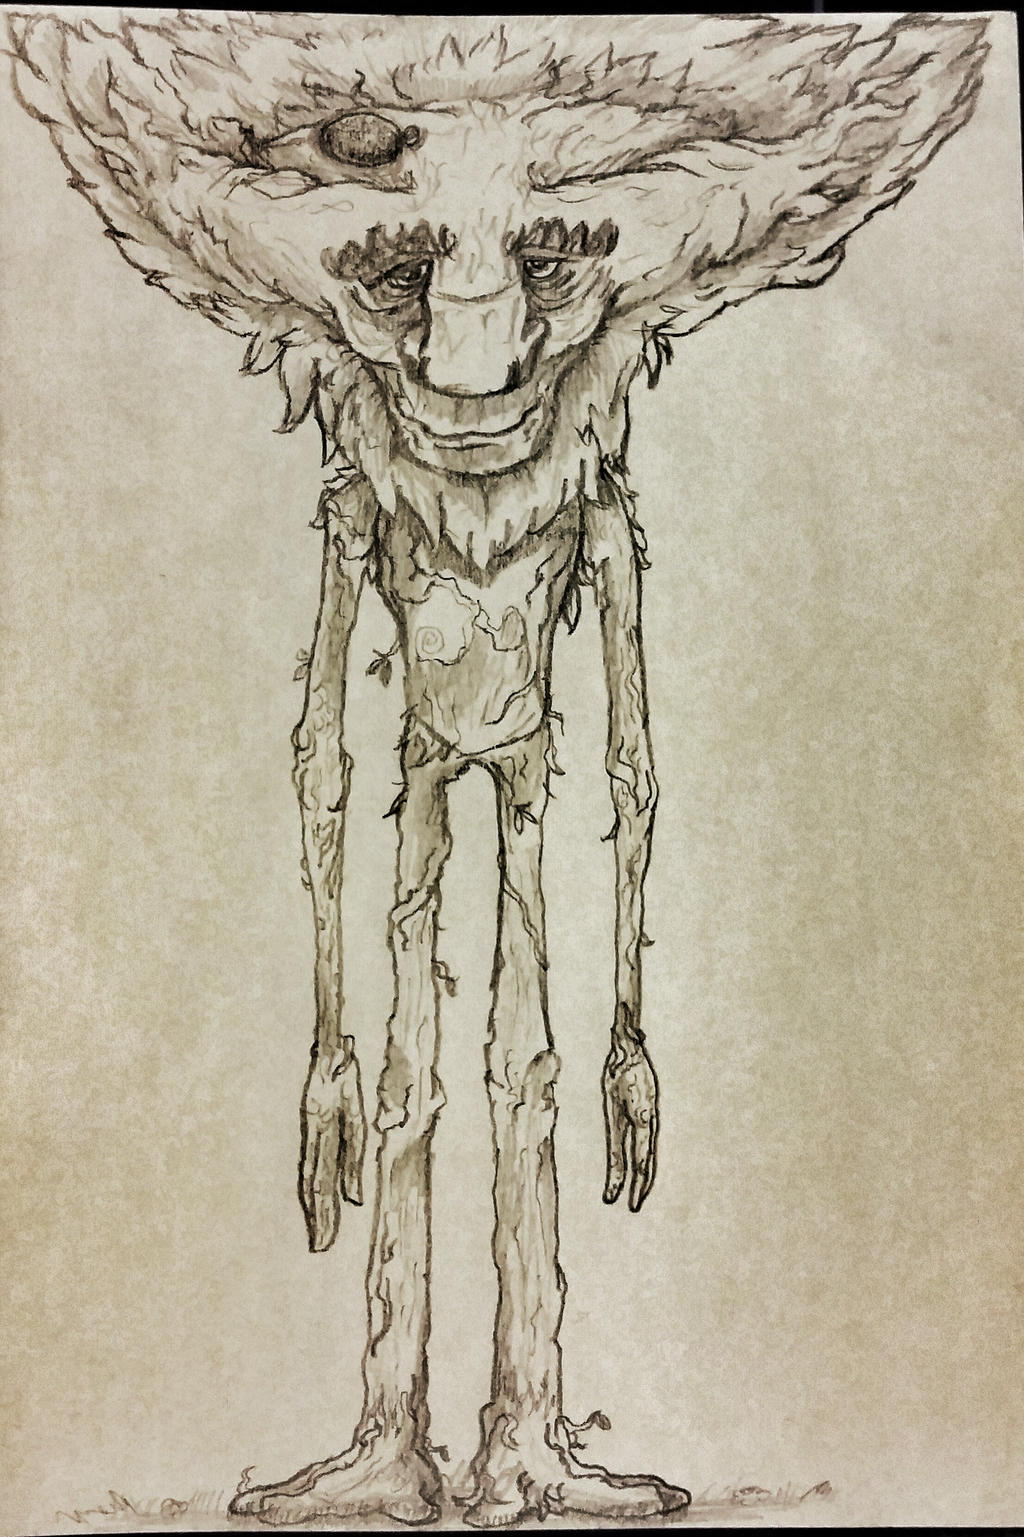 Ivern the Green Father sketch by Scootbumps on DeviantArt